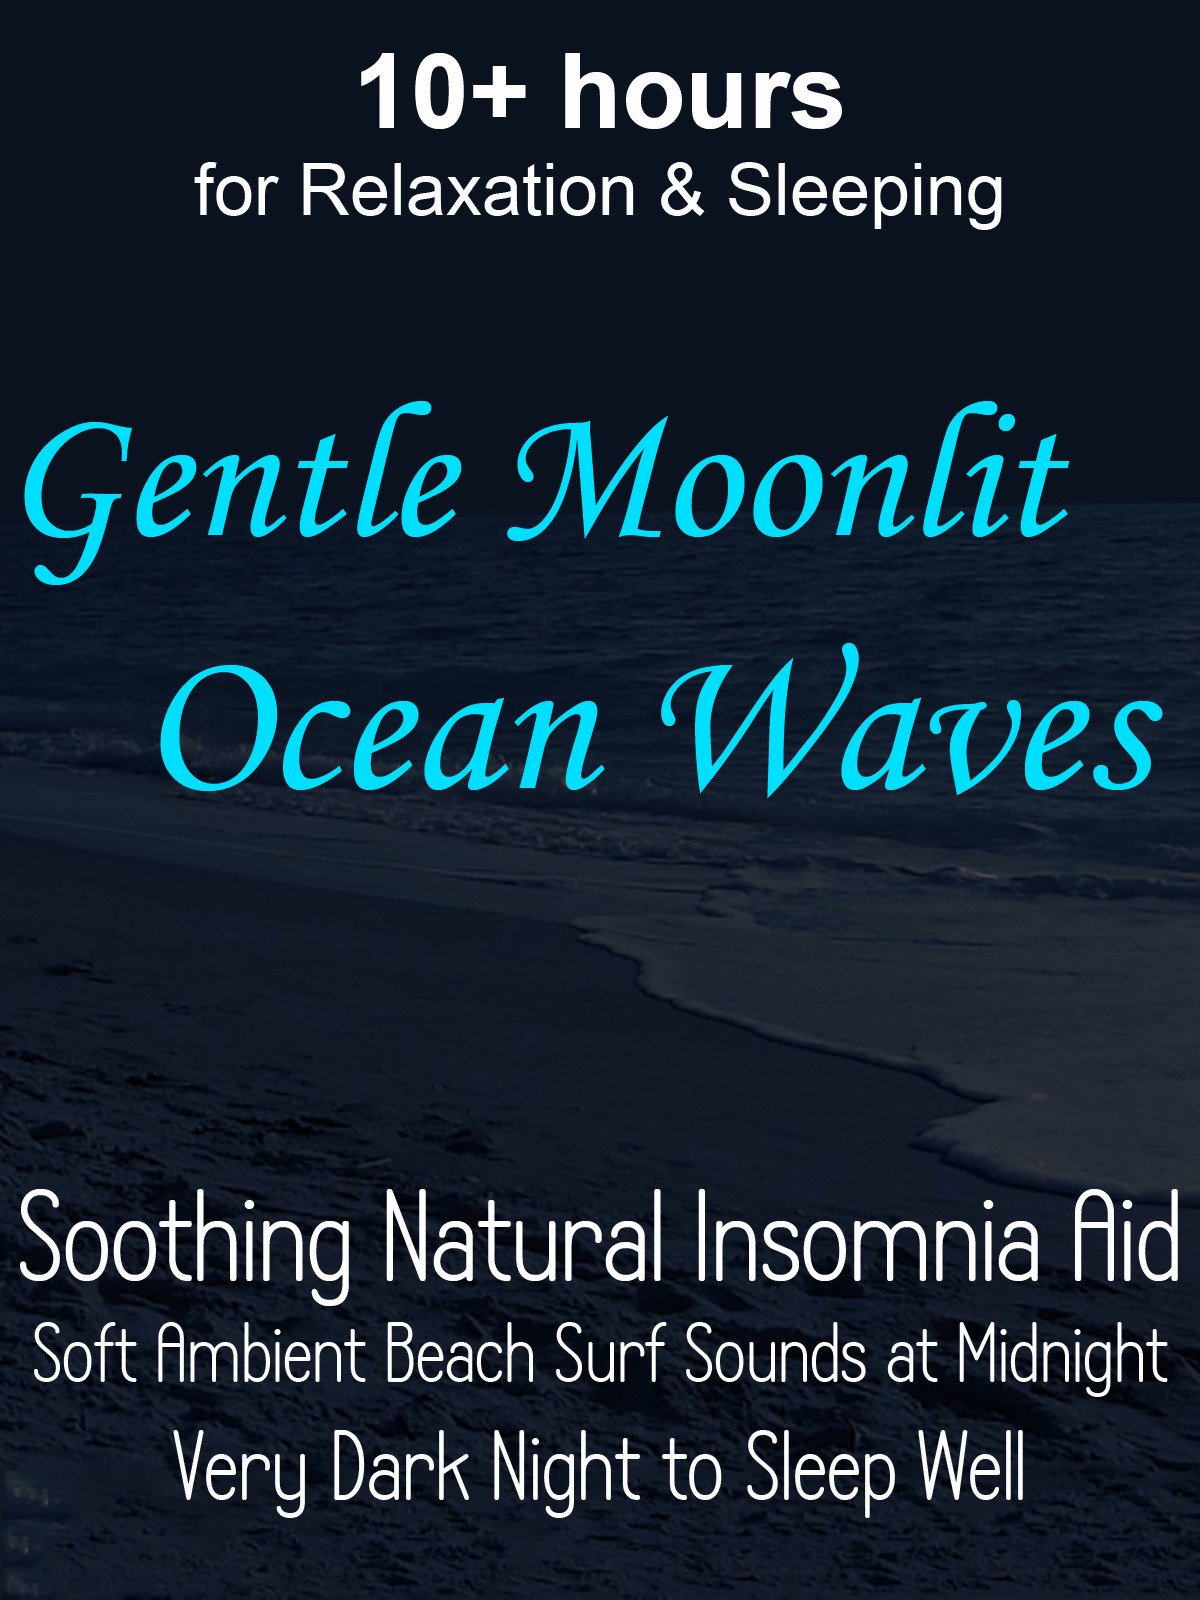 10+ hours for Relaxation & Sleeping Gentle Moonlit Ocean Waves Soothing Natural Insomnia Aid Soft Ambient Beach Surf Sounds at Midnight Very Dark Night to Sleep Well